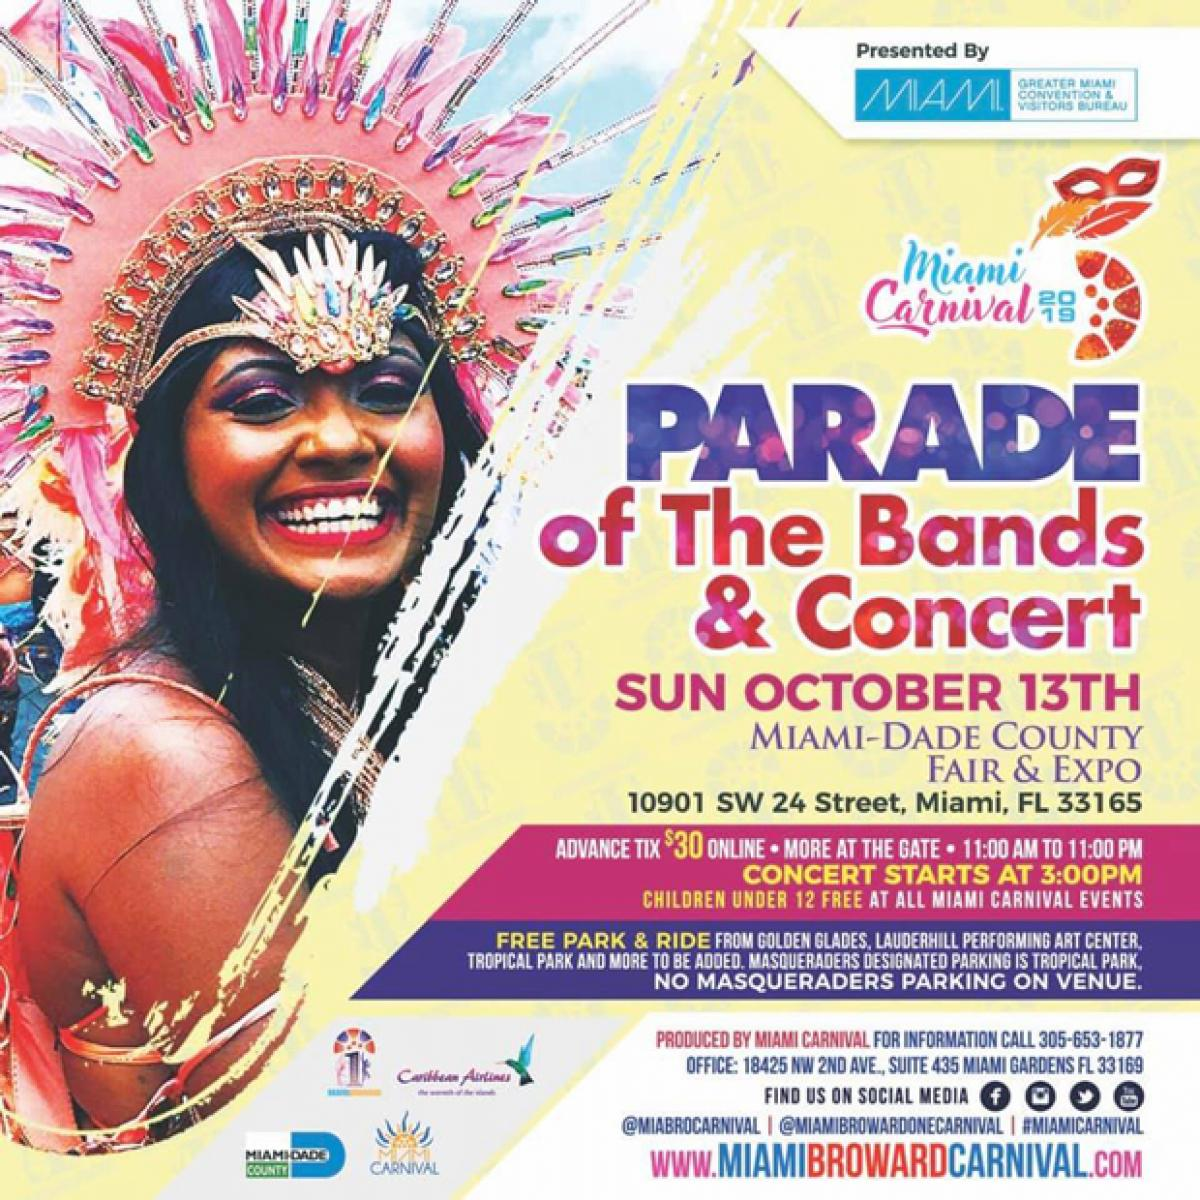 Parade of the Bands & Concert flyer or graphic.